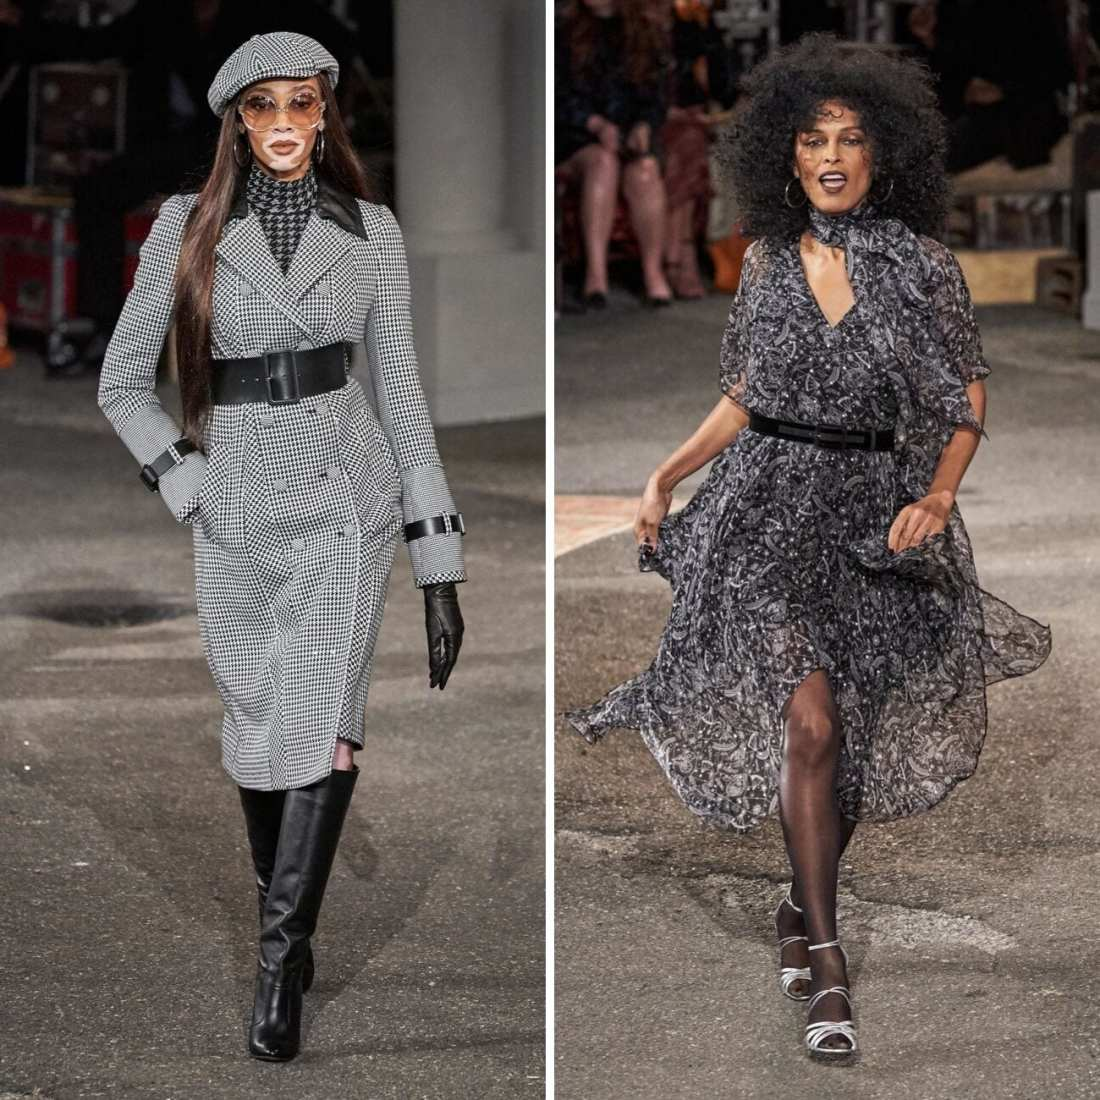 TommyxZendaya Fall 2019 with two models walking down runway. wearing 70's funk and menswear for women fashion trend